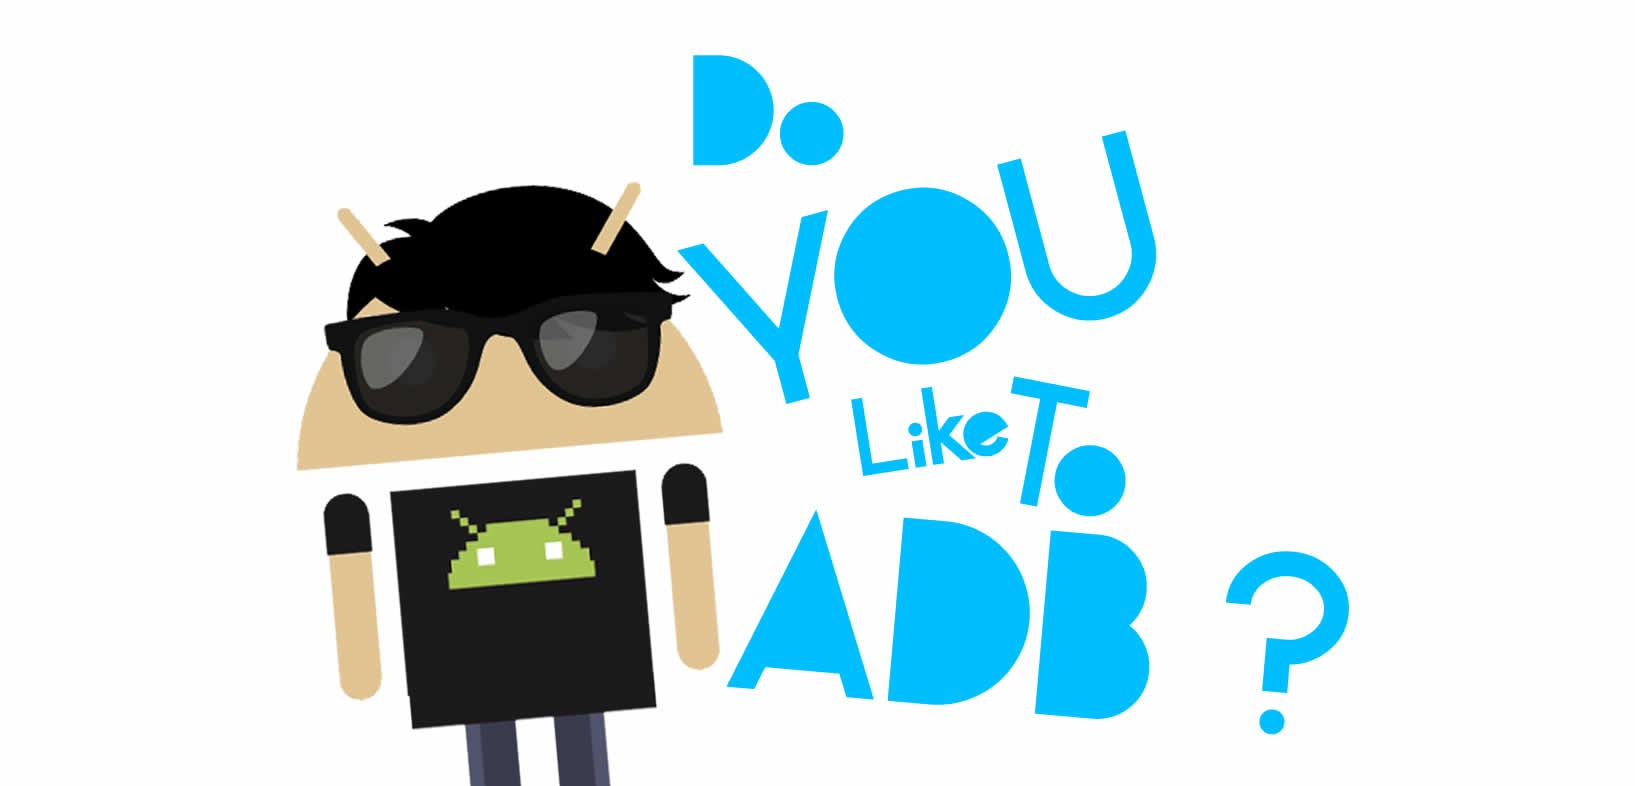 Do you like to ADB? - By Nishant Srivastava